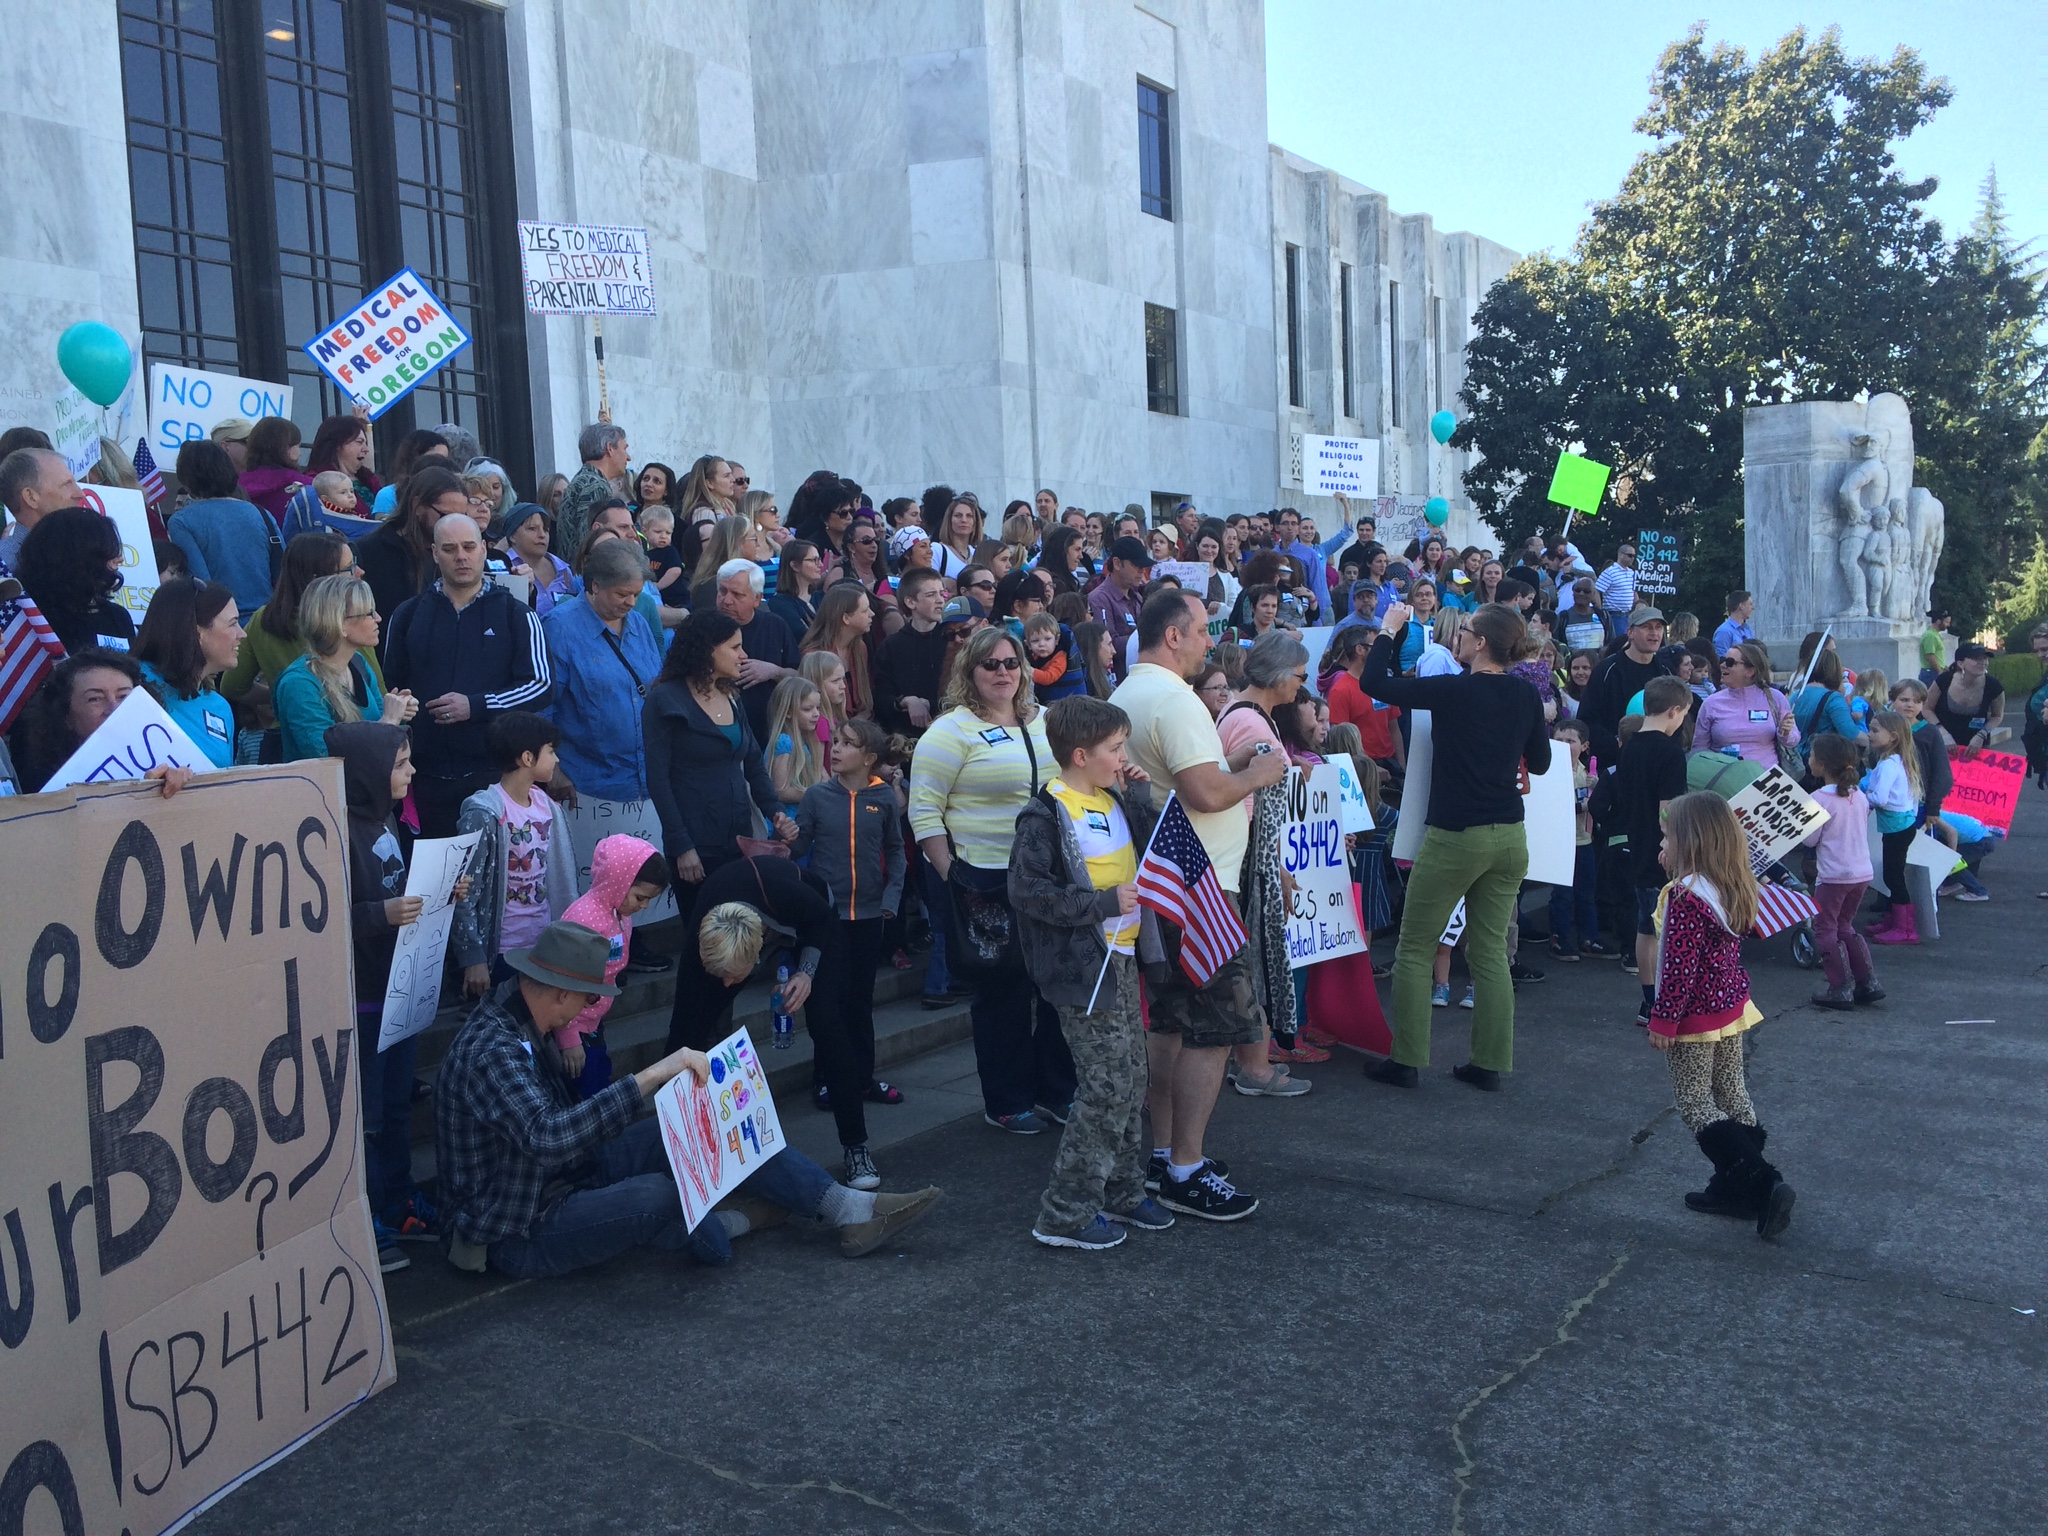 Over 300 people attended the rally for medical freedom on March 9, 2015 in Salem, Oregon